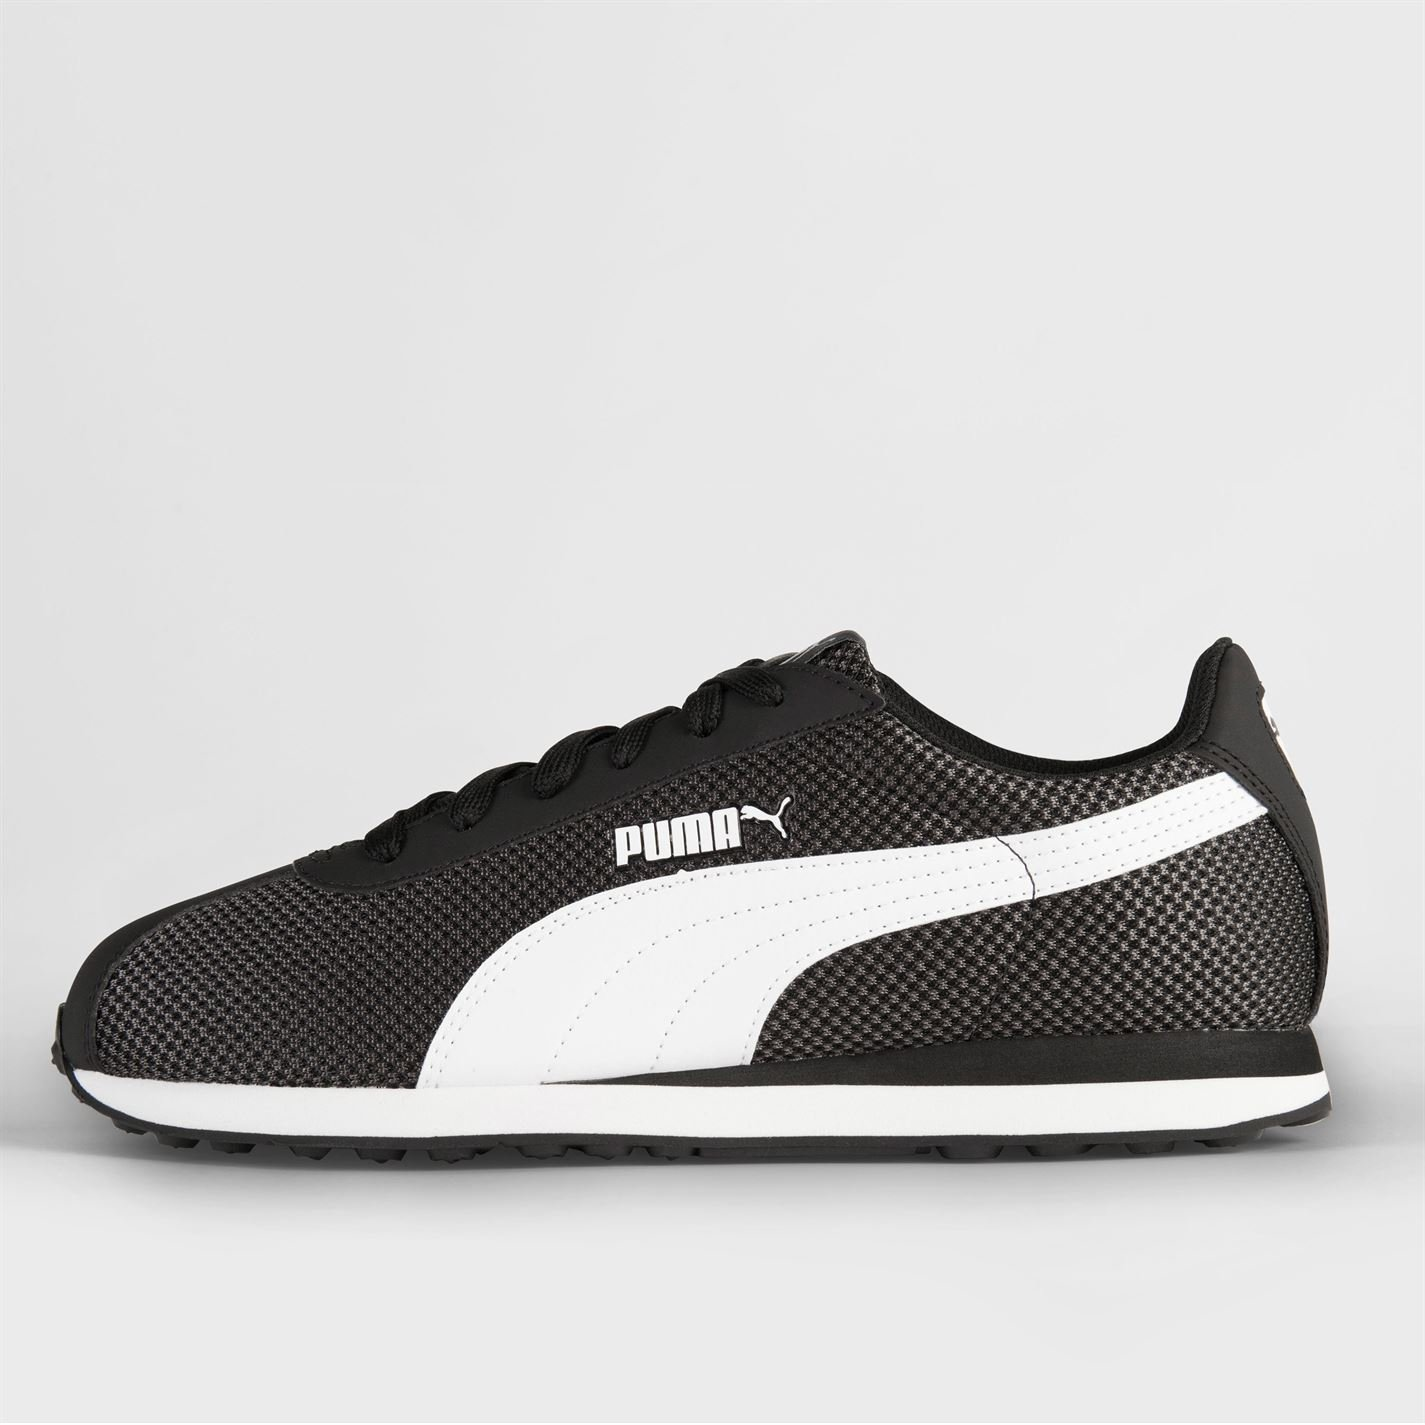 25bb614b19b Puma Turin Mesh Trainers Mens Black/White Athletic Sneakers Shoes:  Amazon.co.uk: Sports & Outdoors